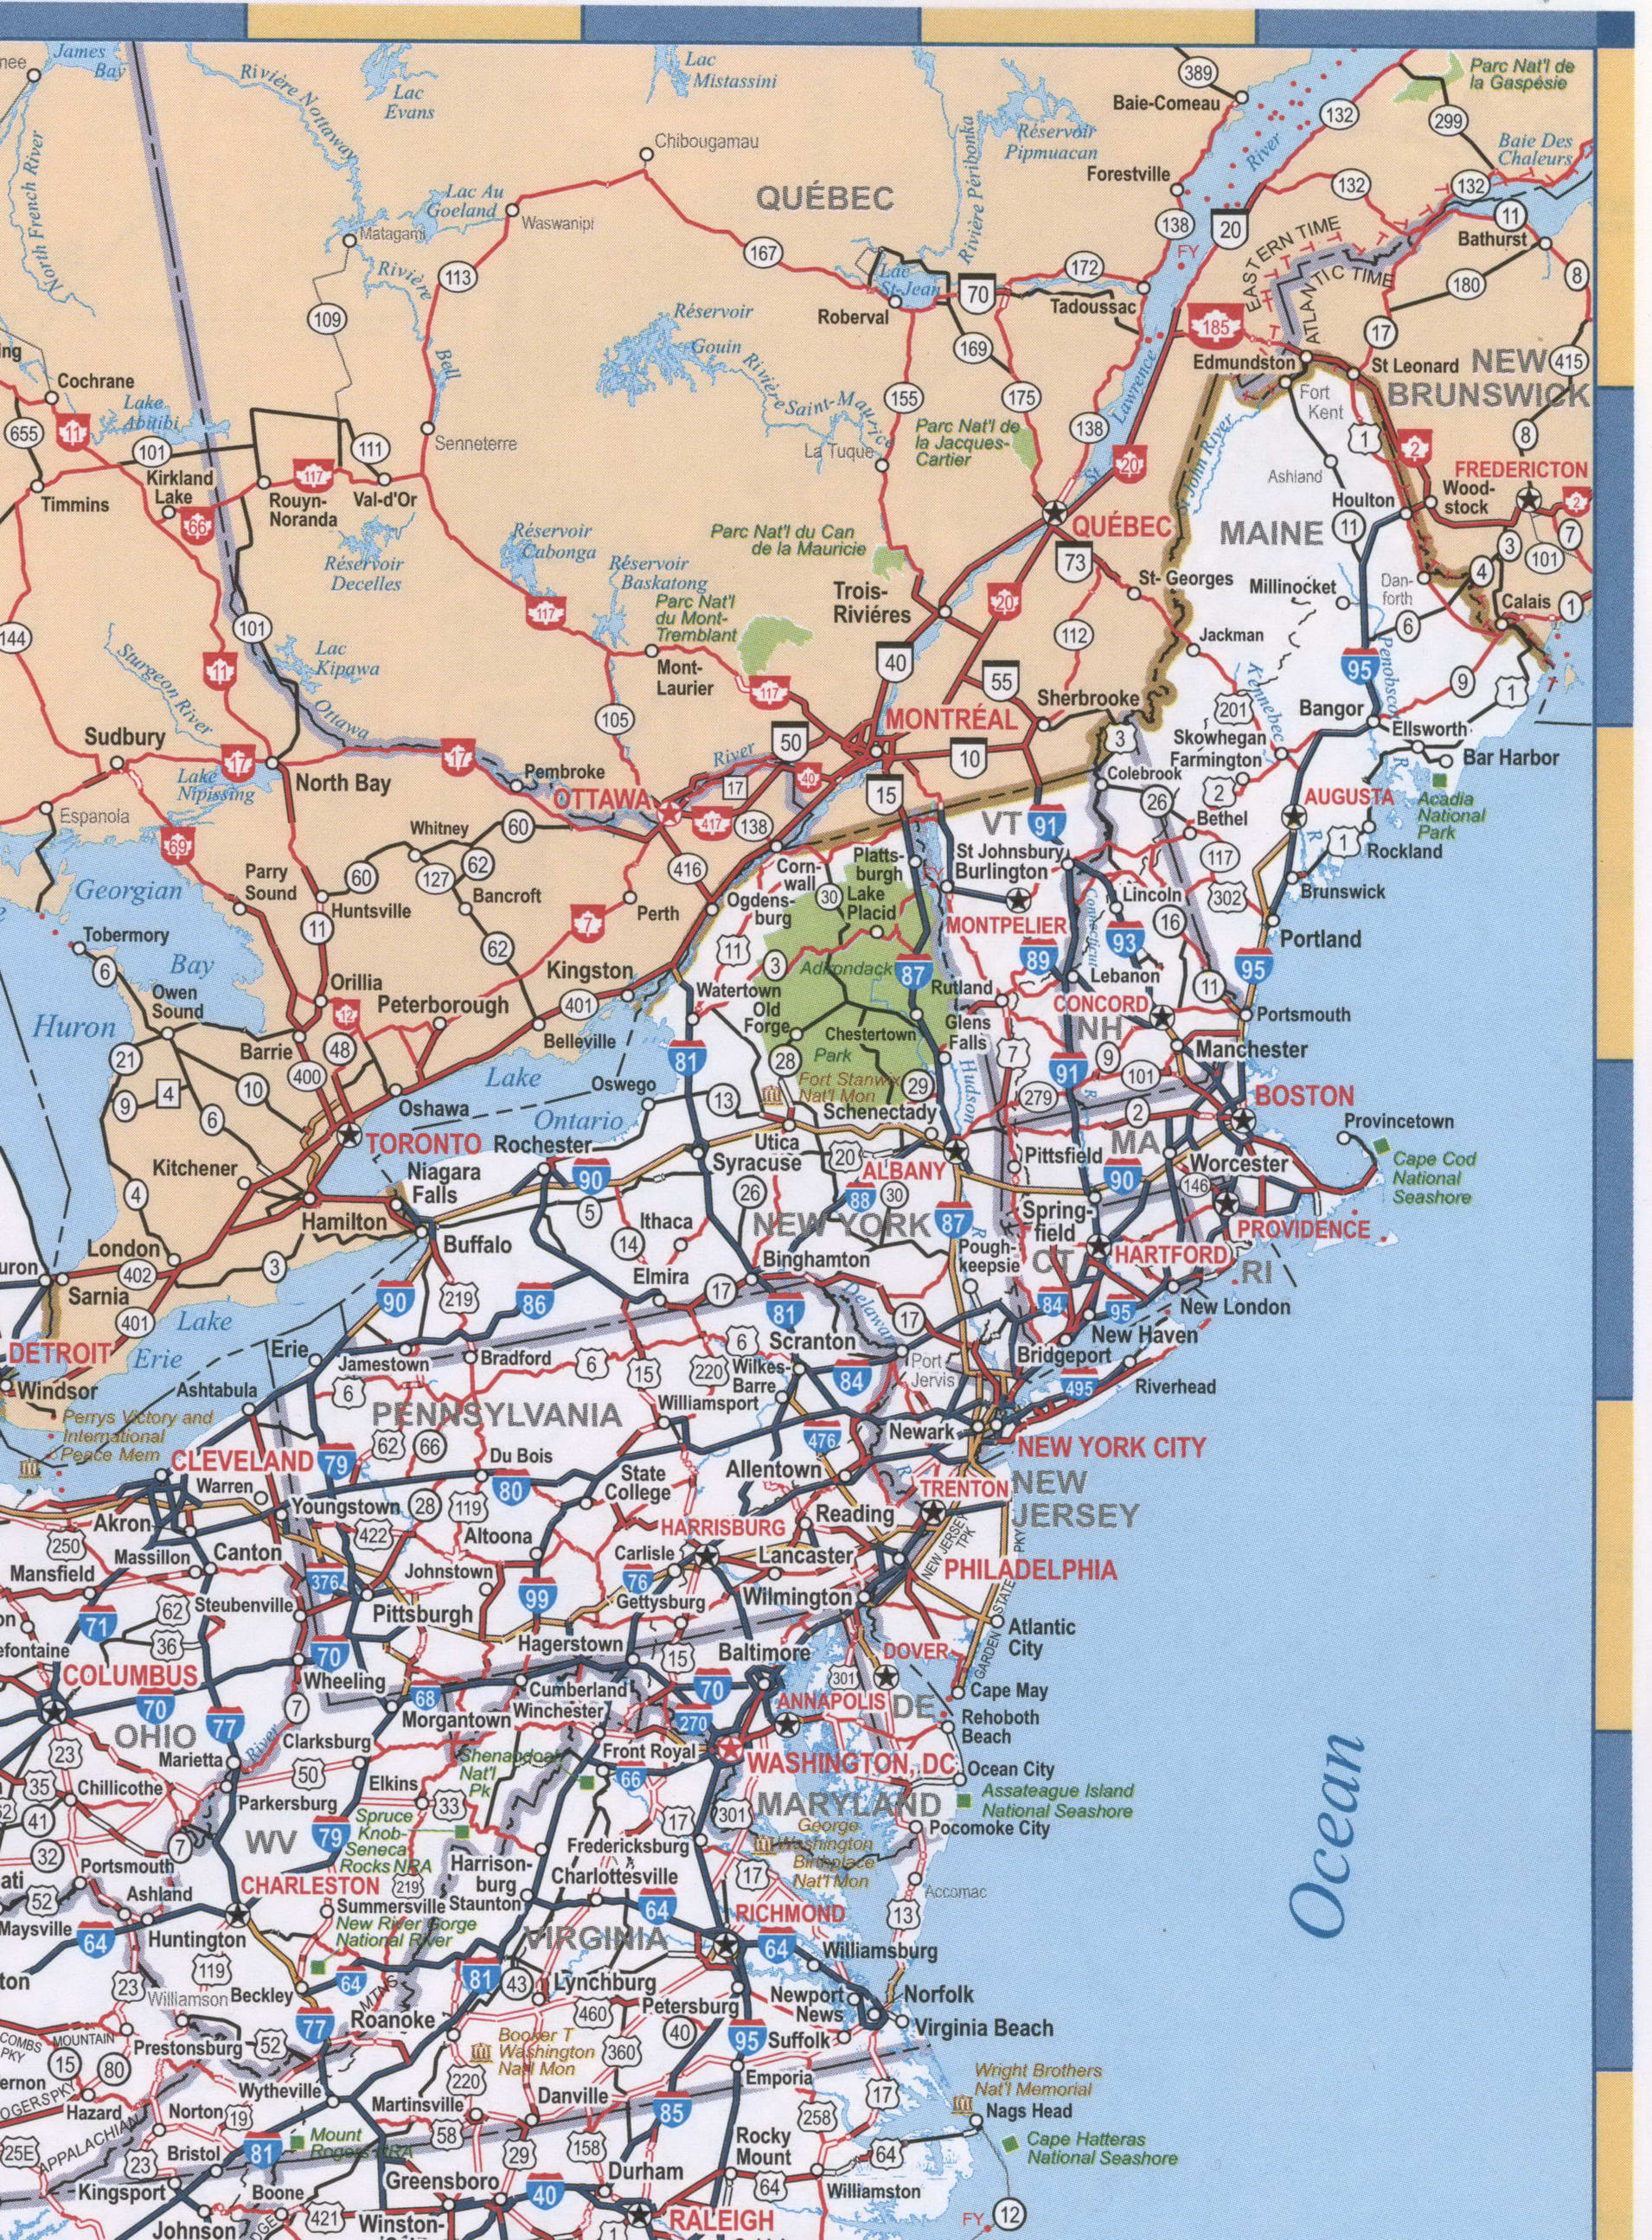 Map of New England region USA